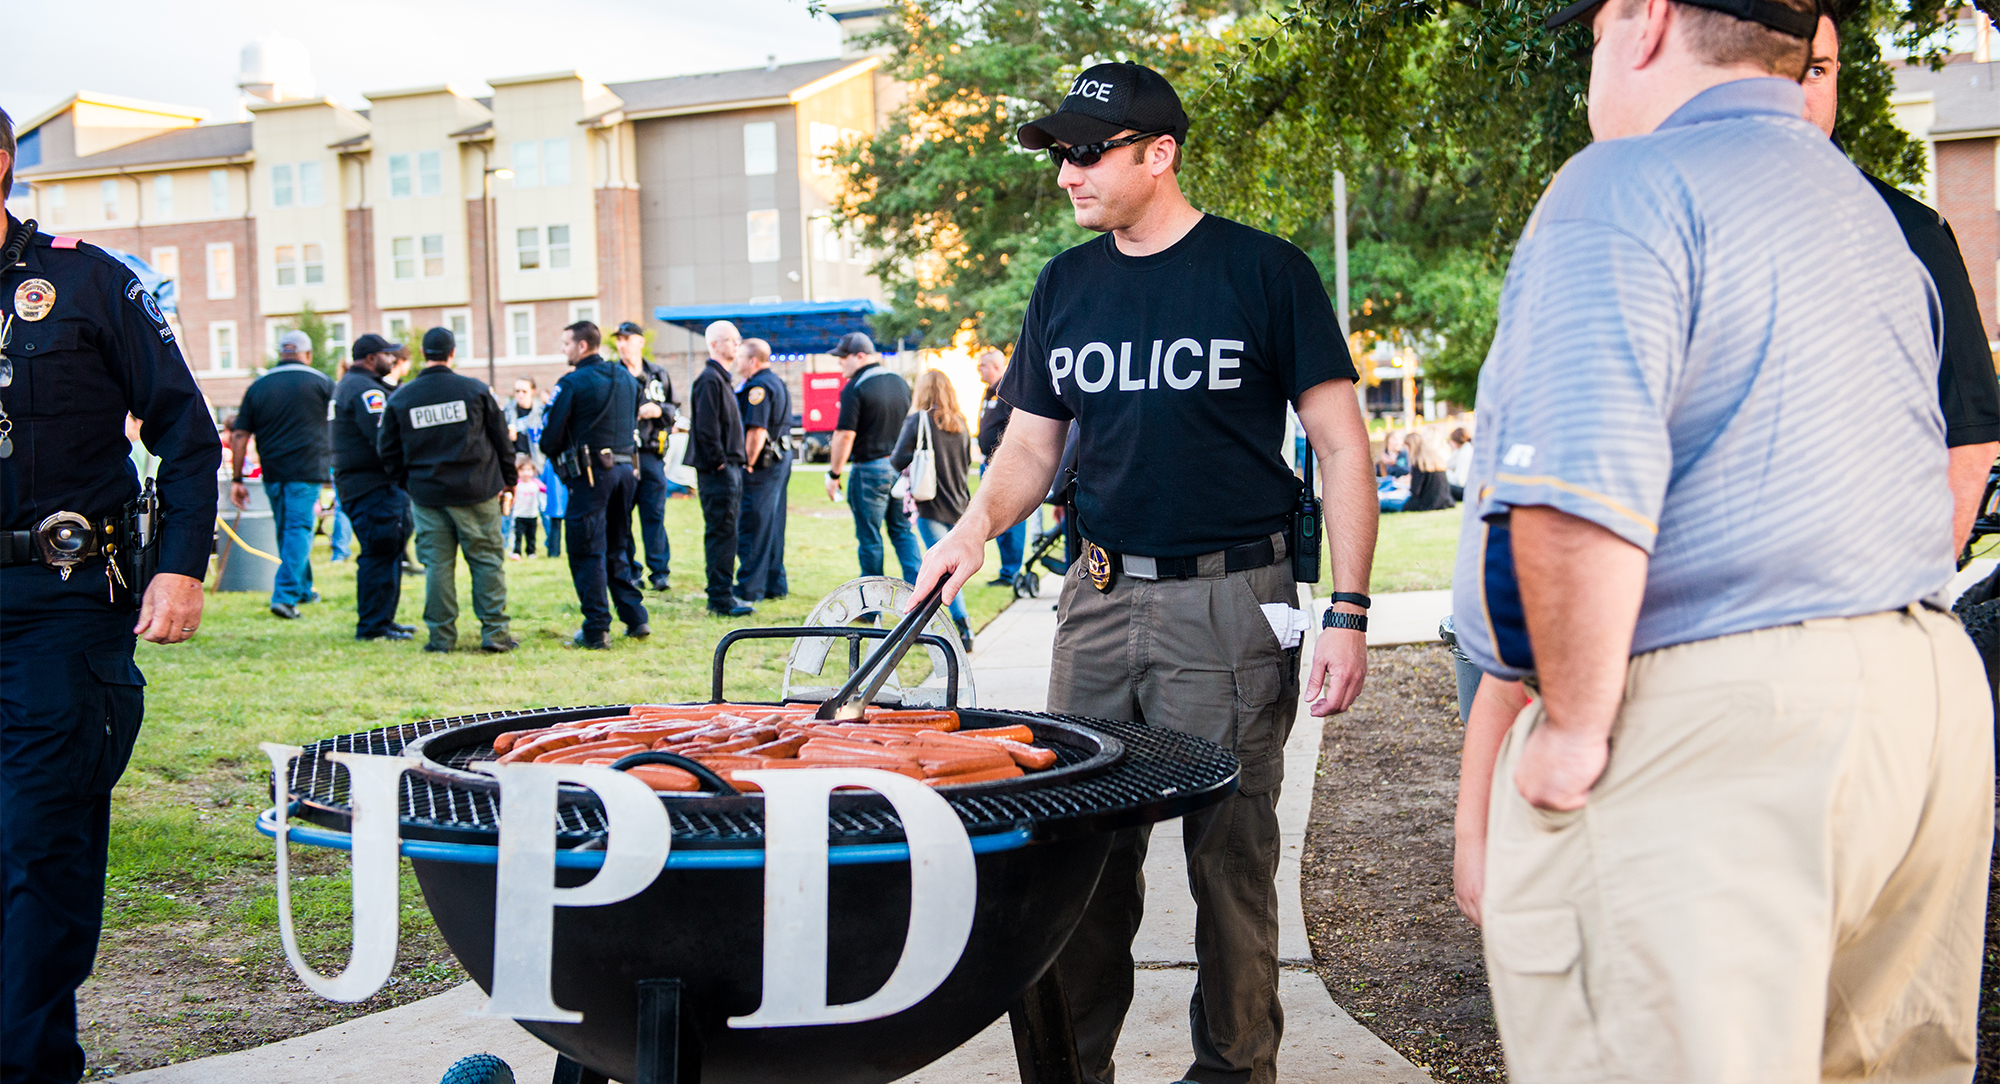 Police officer grilling hot dogs at a community engagement event.